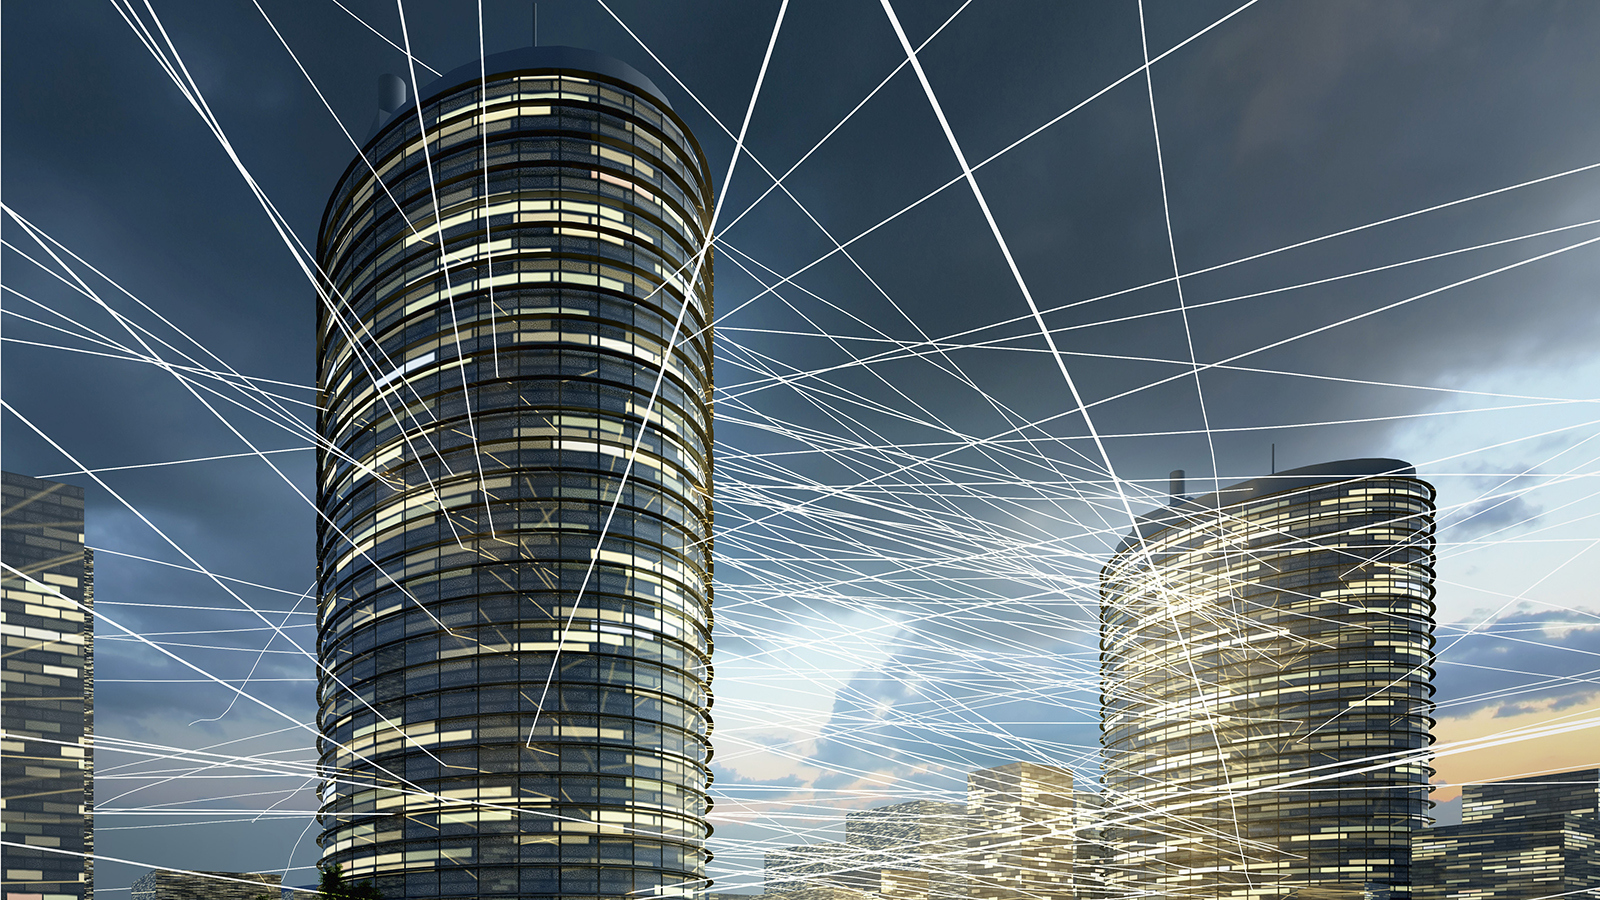 office towers with light beams visualizing communication flow